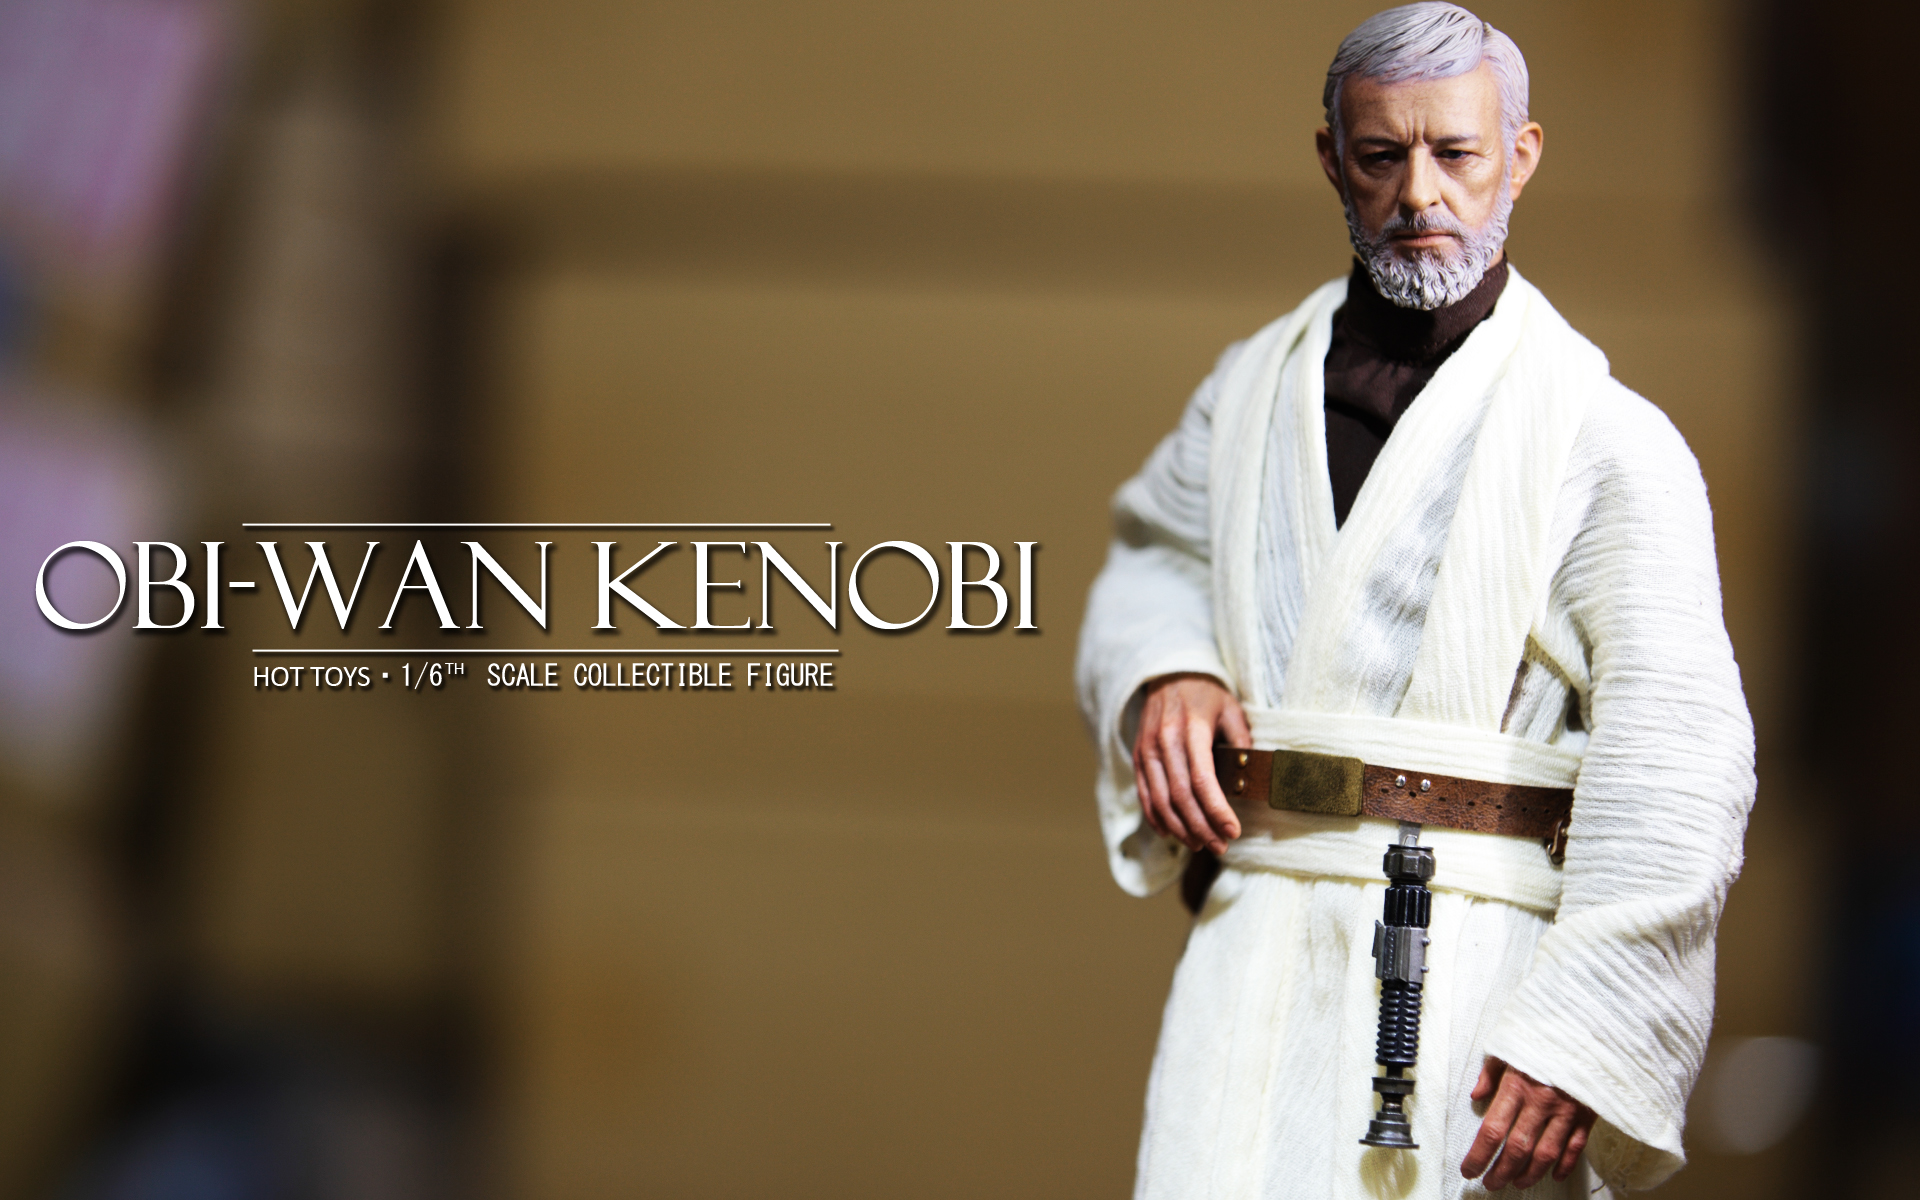 hottoys-star-wars-episode-IV-a-new-hope-obi-wan-kenobi-picture09